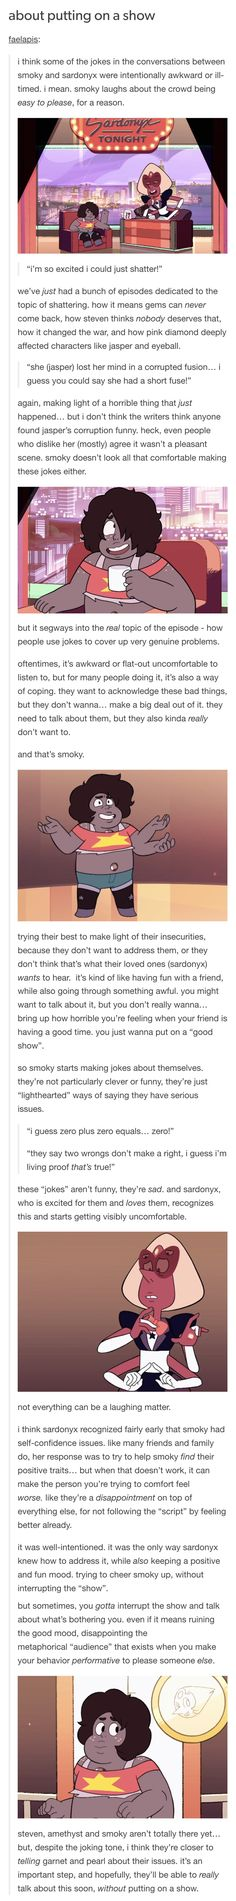 ALSO I believe Sardonyx mentioned something about what the two had in common to fuse Smoky...I think that it's that they both have issues with being themselves. They're always trying to be what everyone wants them to be.